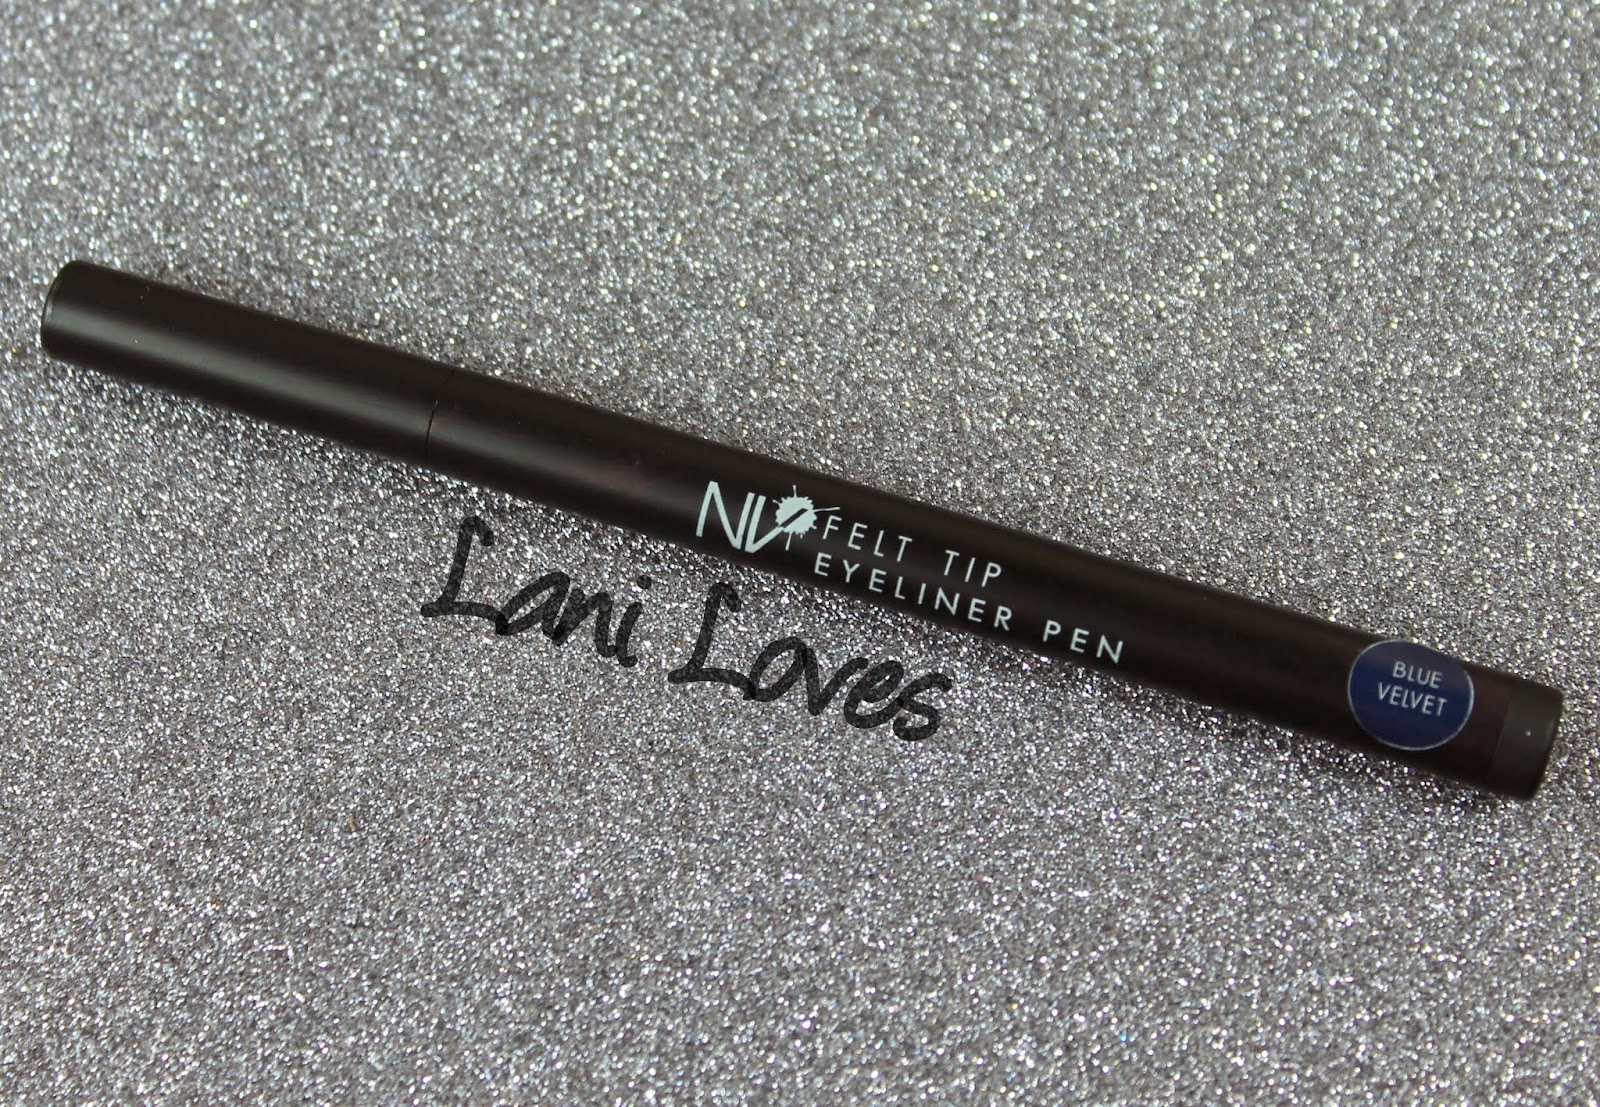 NV Felt Tip Eyeliner Pen - Blue Velvet preview